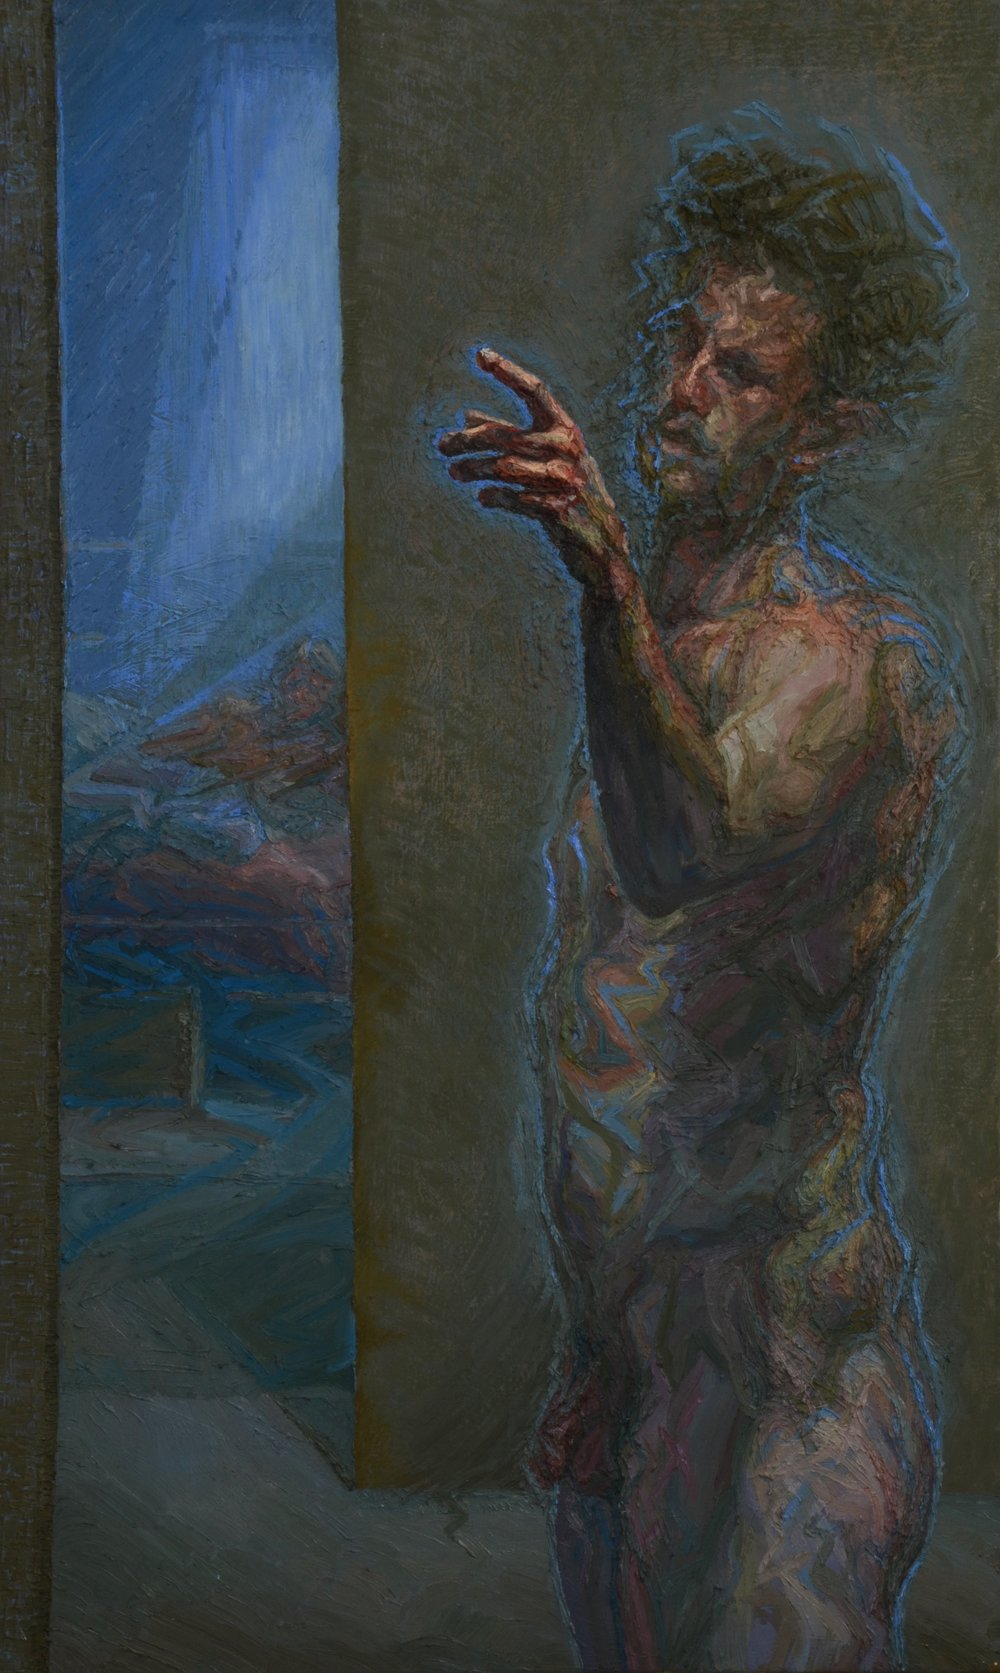 Charlie Schaffer, Self-Portrait in Margate, oil on canvas, 115 x 70 cm,  http://www.charlieschaffer.com